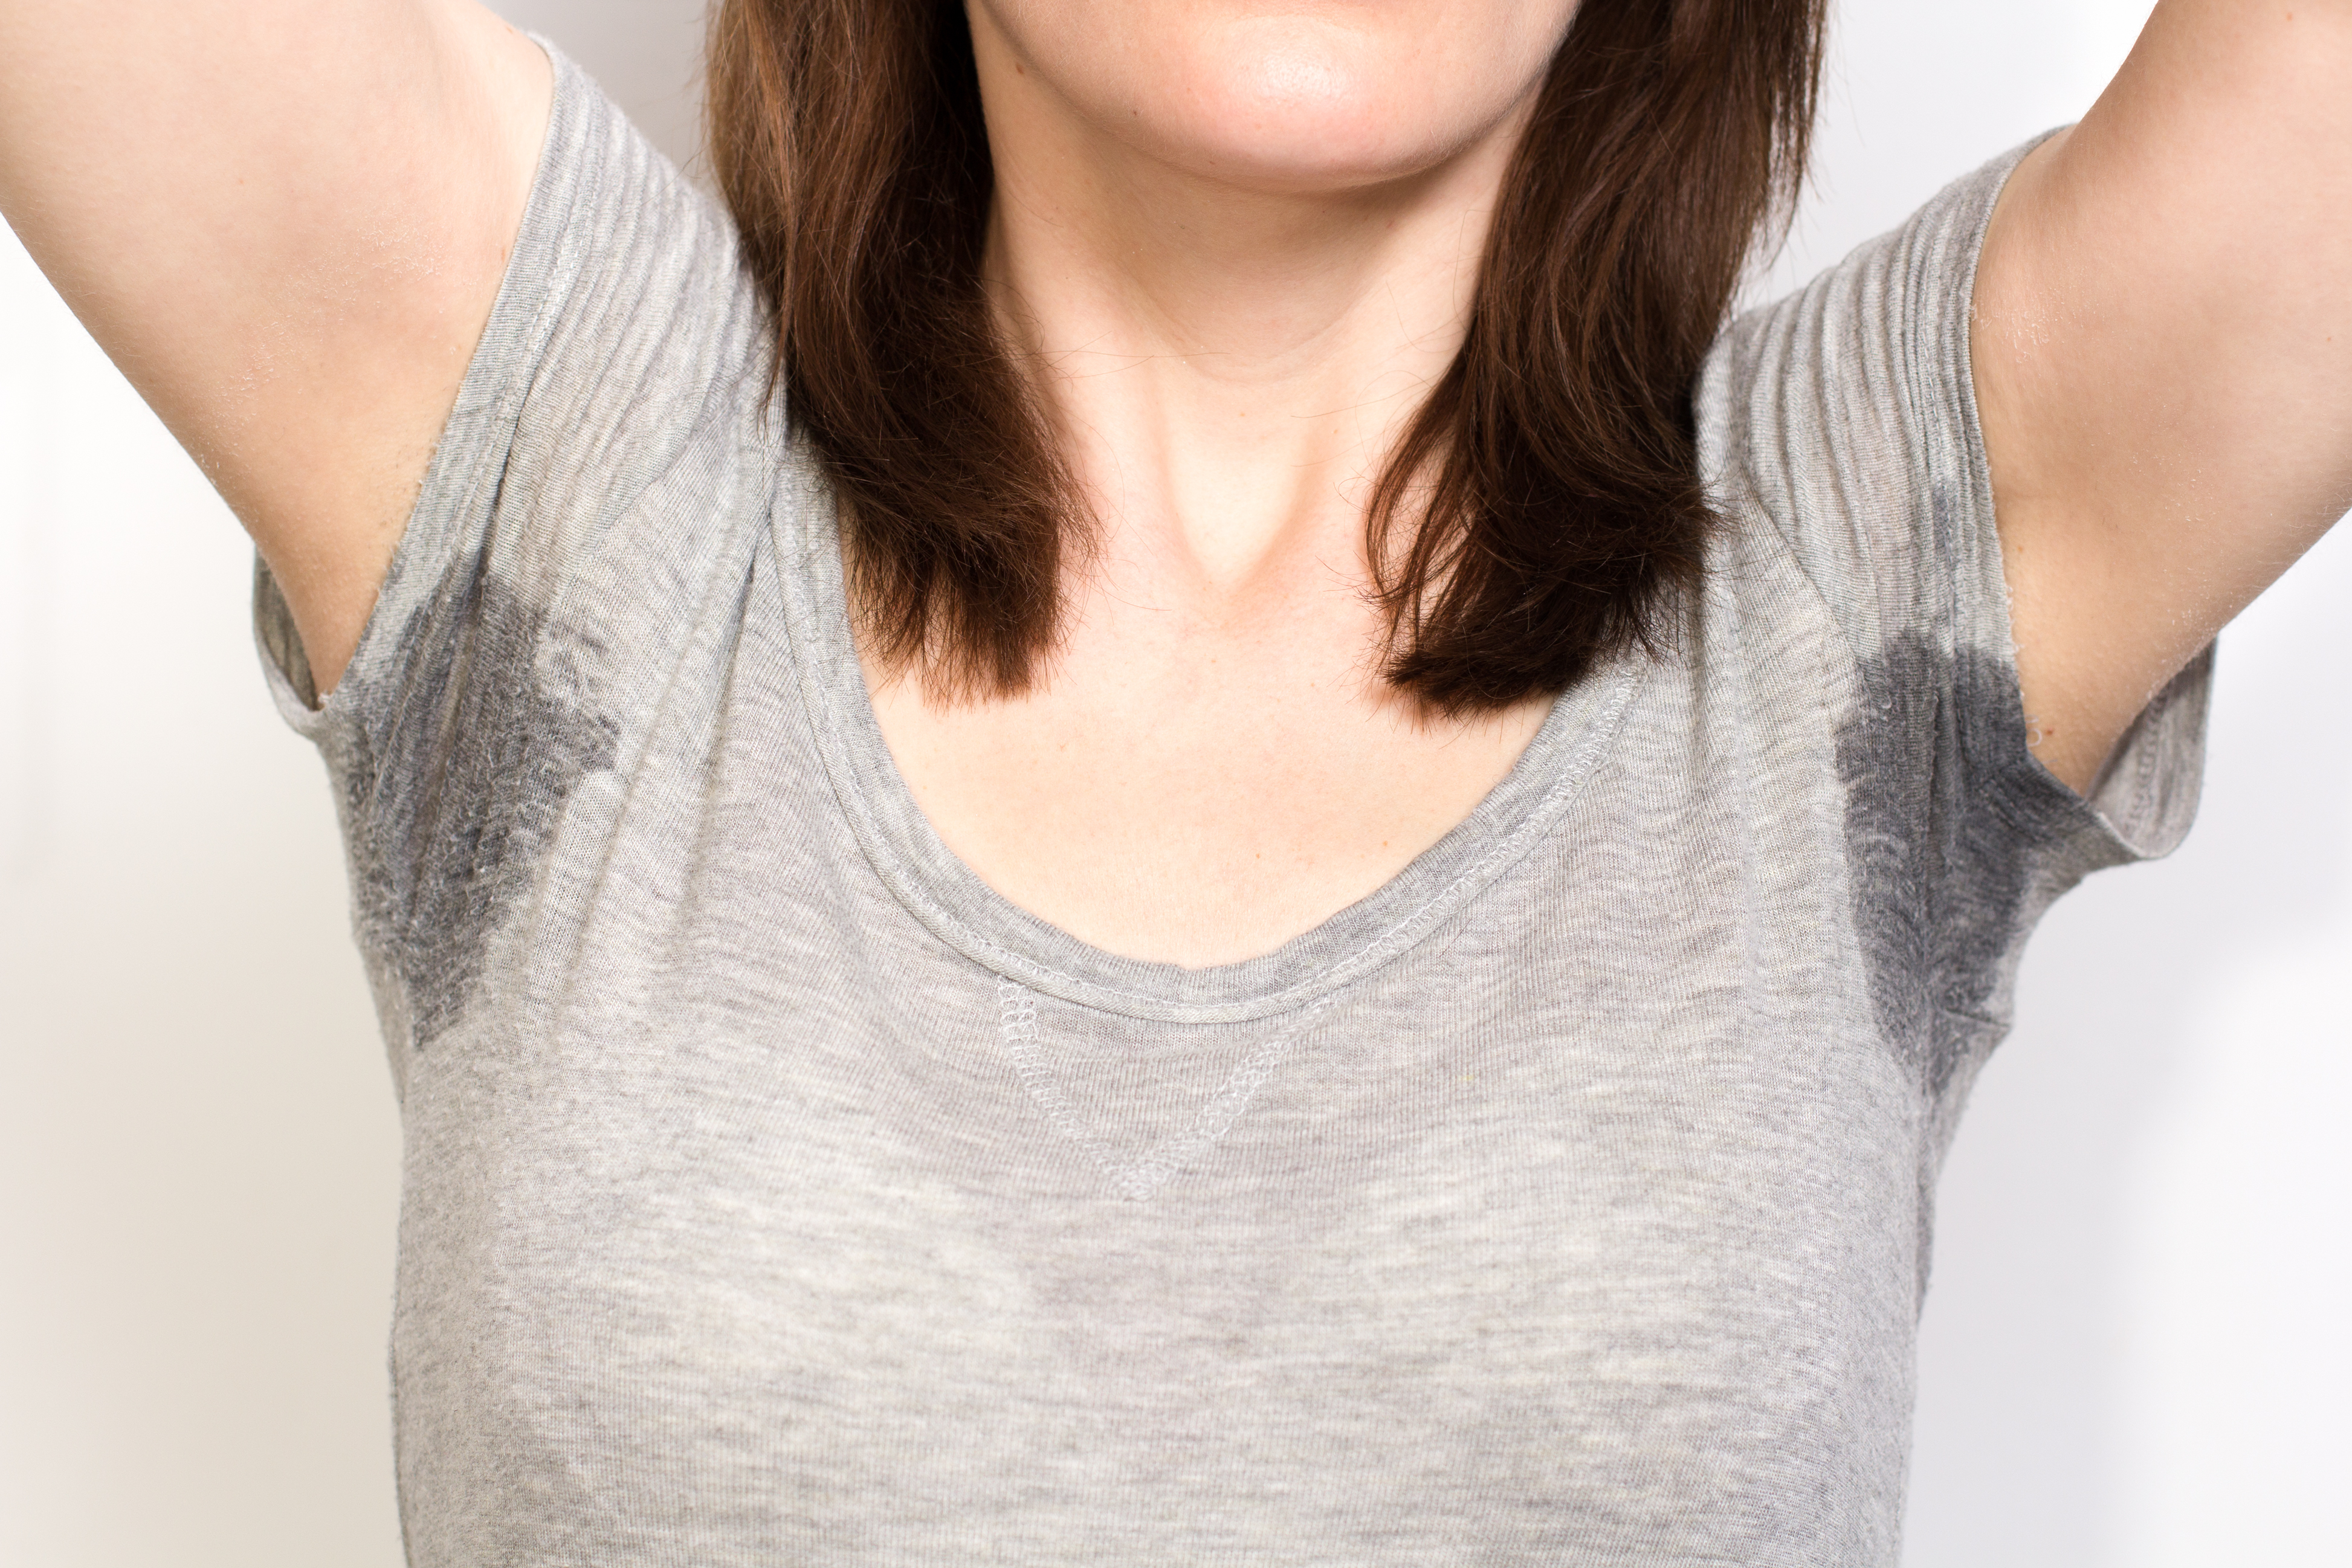 Sorry, hot yoga fans. Sweating doesn't cleanse your body.